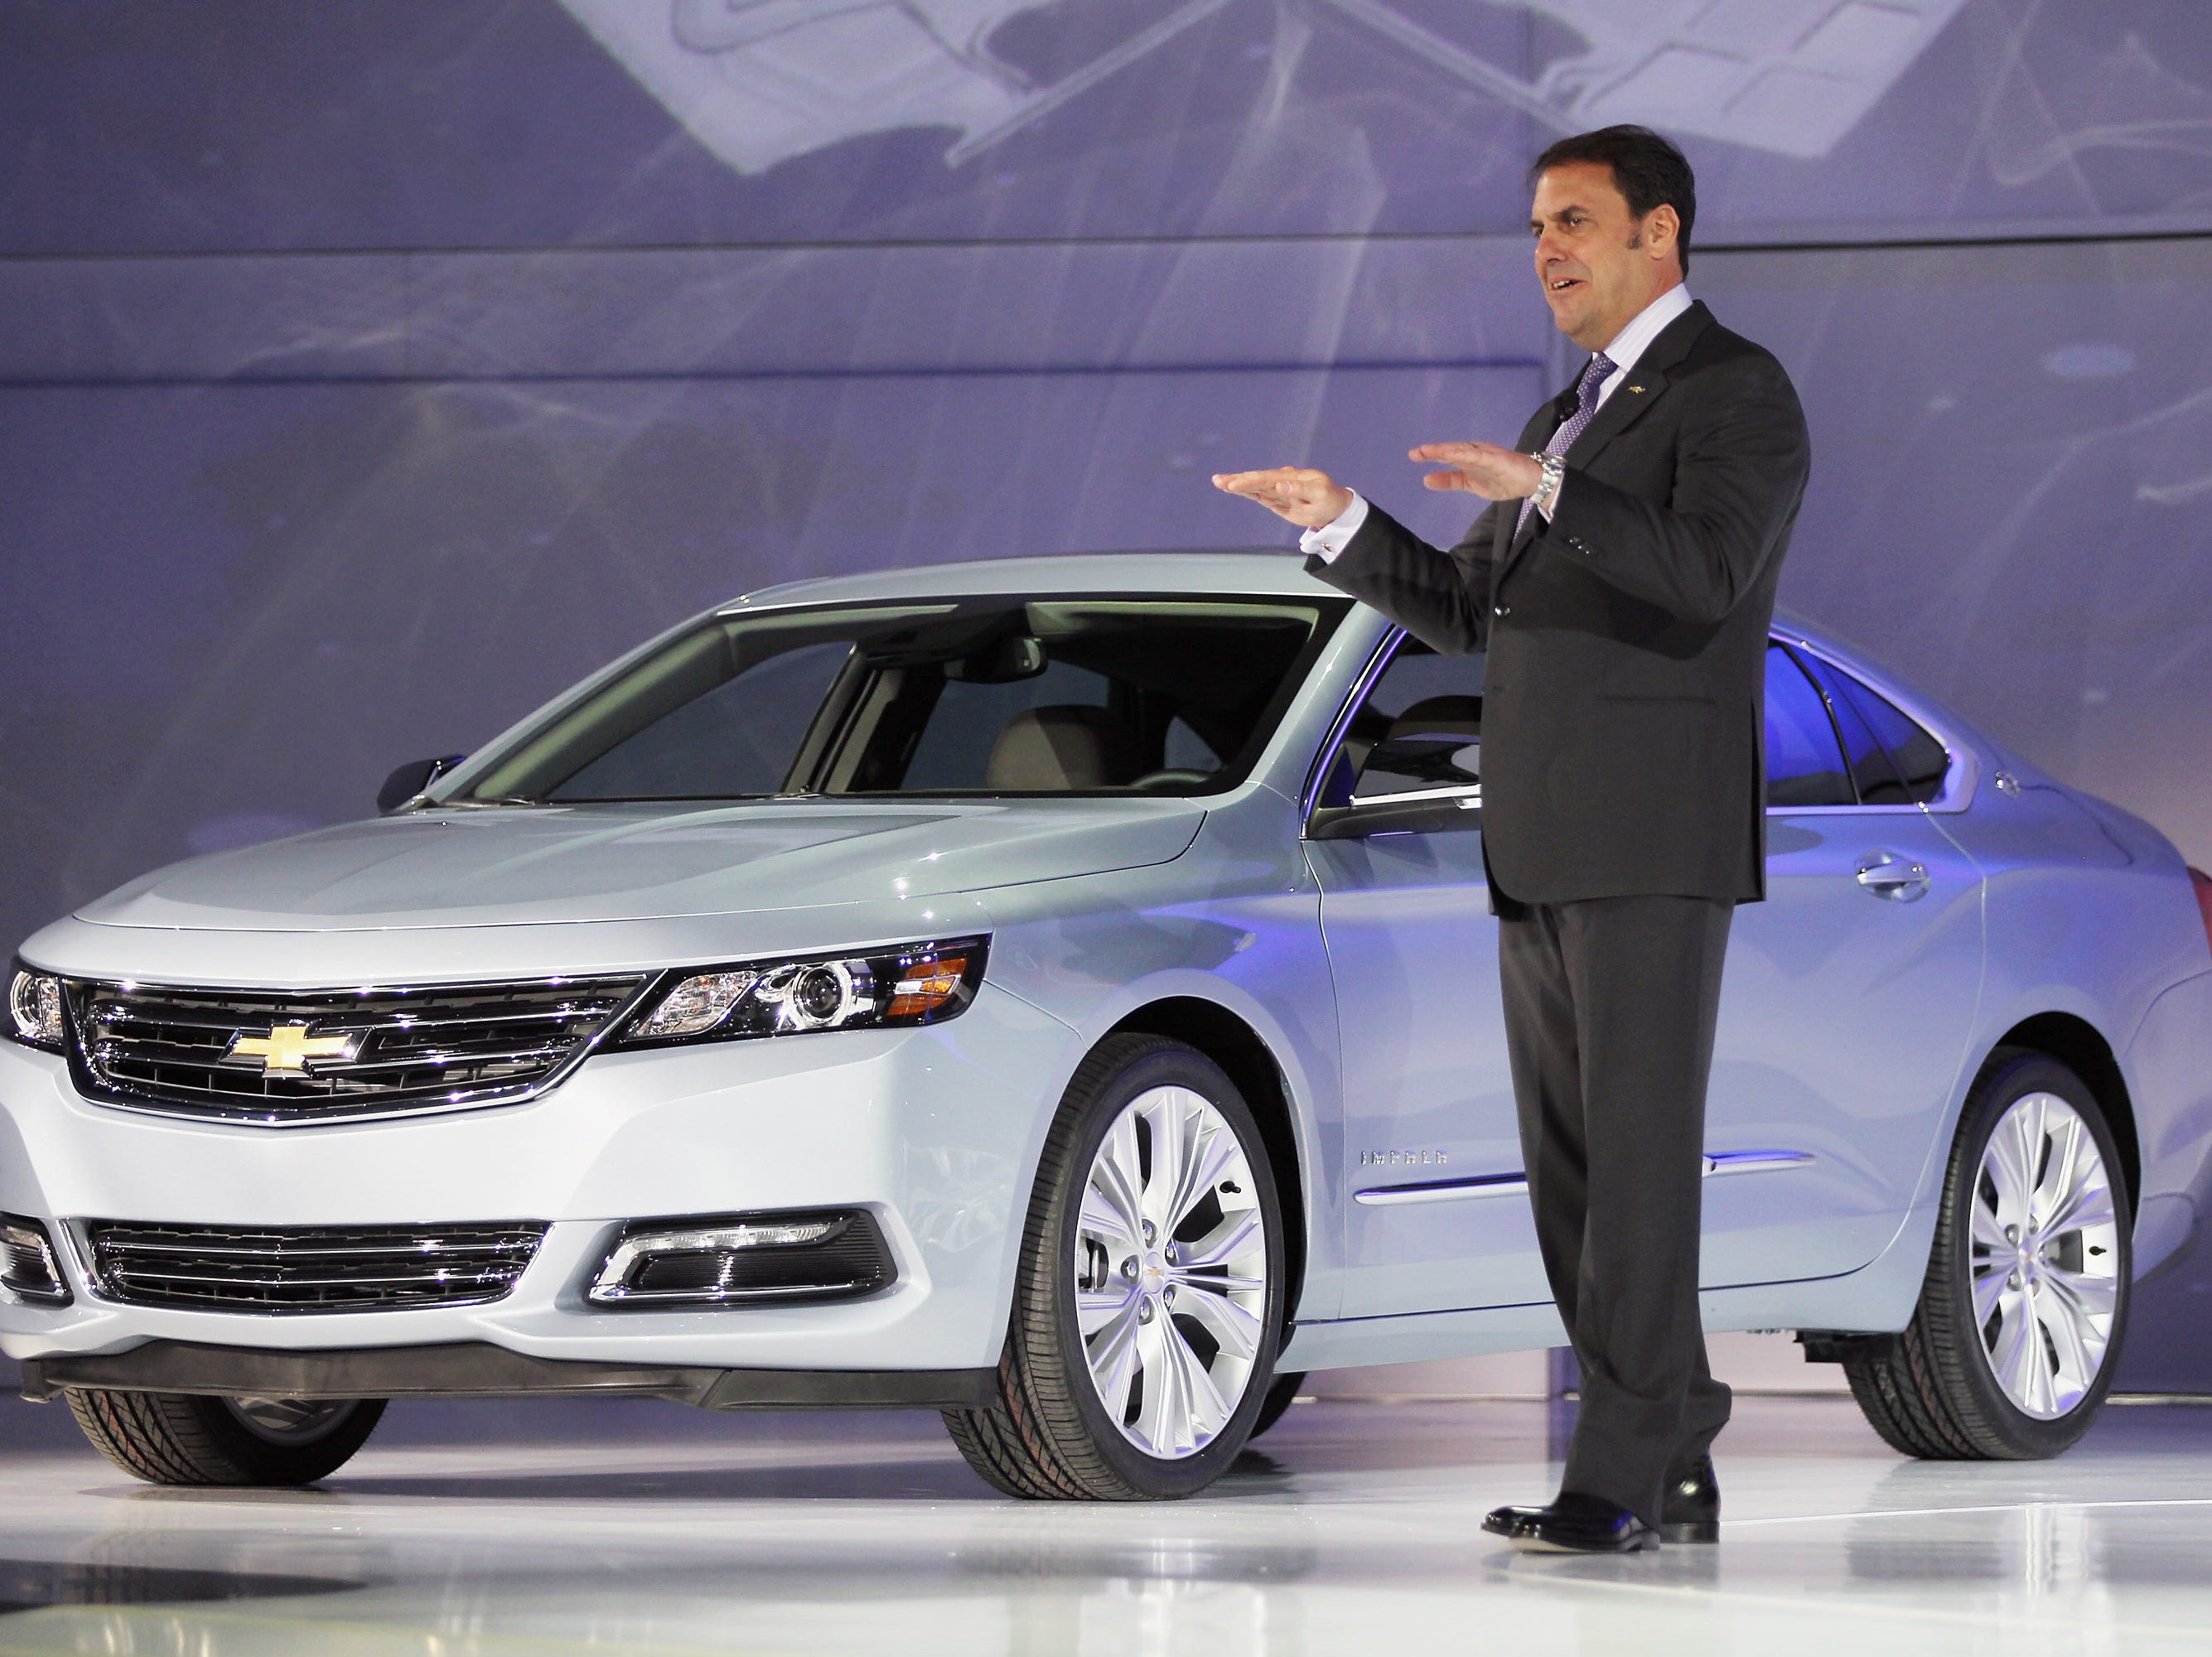 Mark Reuss, President of General Motors North America, introduces the newly unveiled 2014 Chevrolet Impala at the New York International Auto Show at the Jacob Javits Convention Center on April 4, 2012 in New York City.